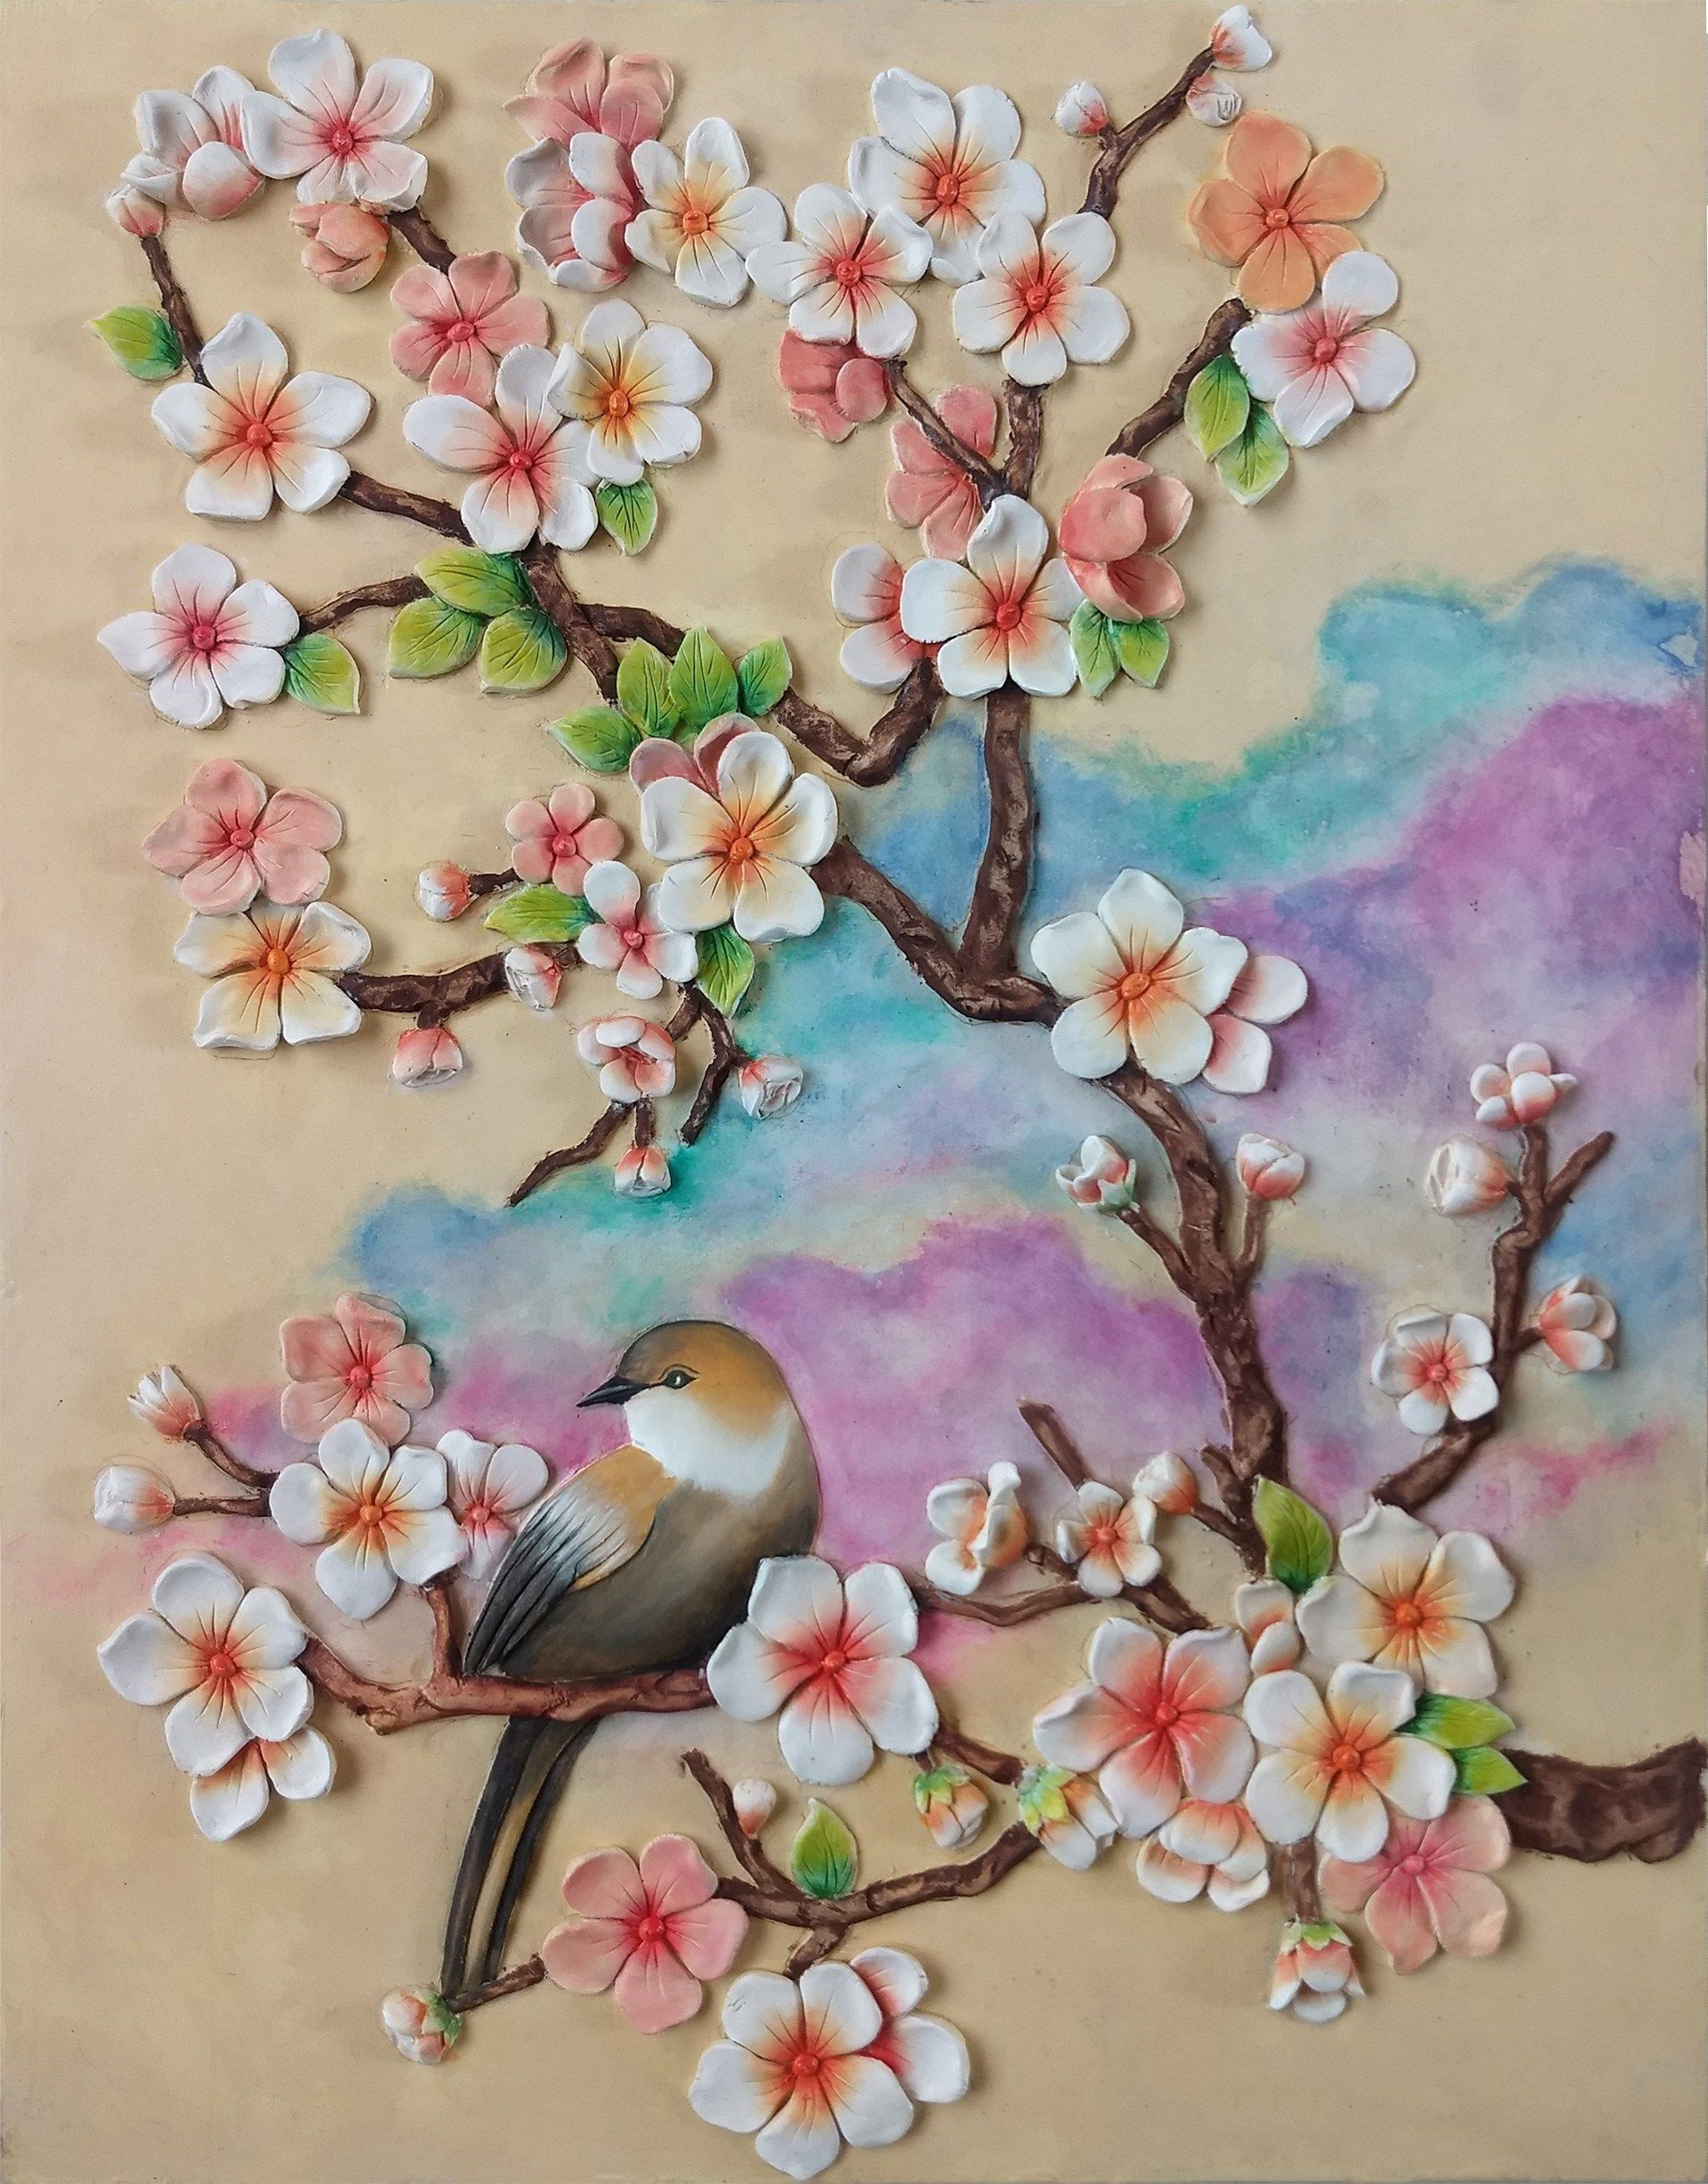 3d Clay Painting Cherry Blossom Flower Credible Art Cherry Blossom Painting Acrylic Flower Art Painting Mural Art